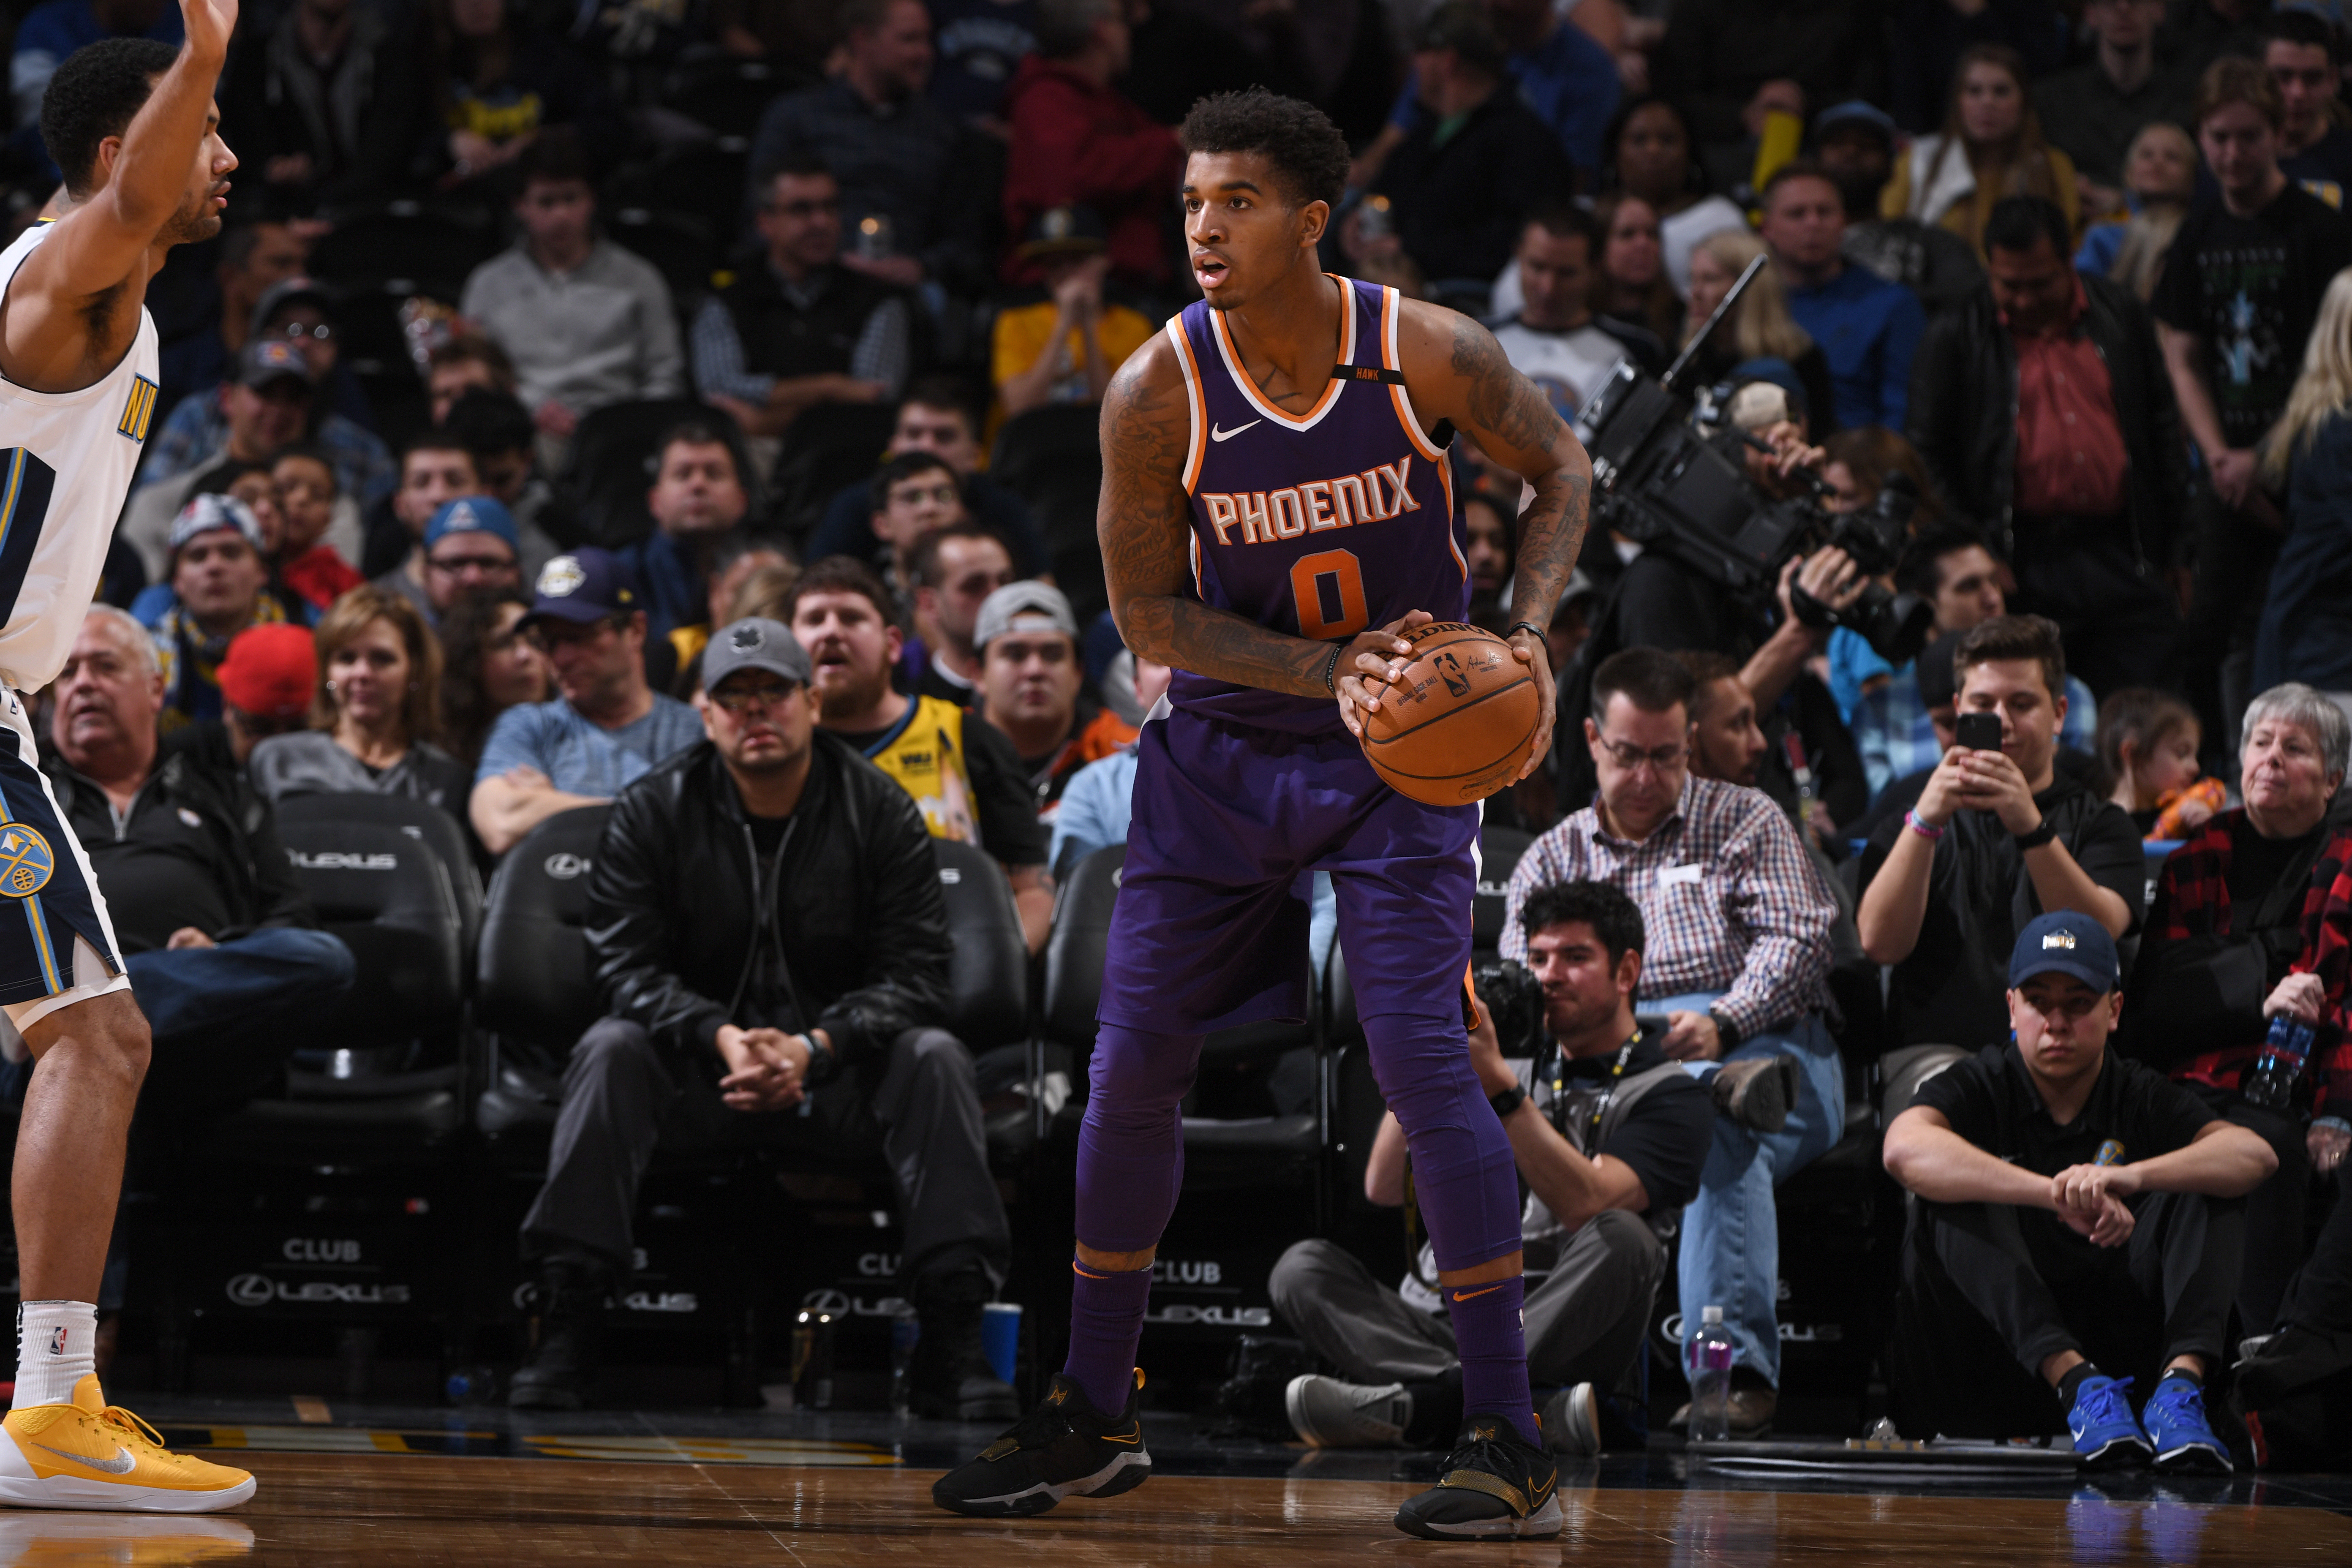 Suns' Marquese Chriss Will be Suspended for 1 Game After Argument